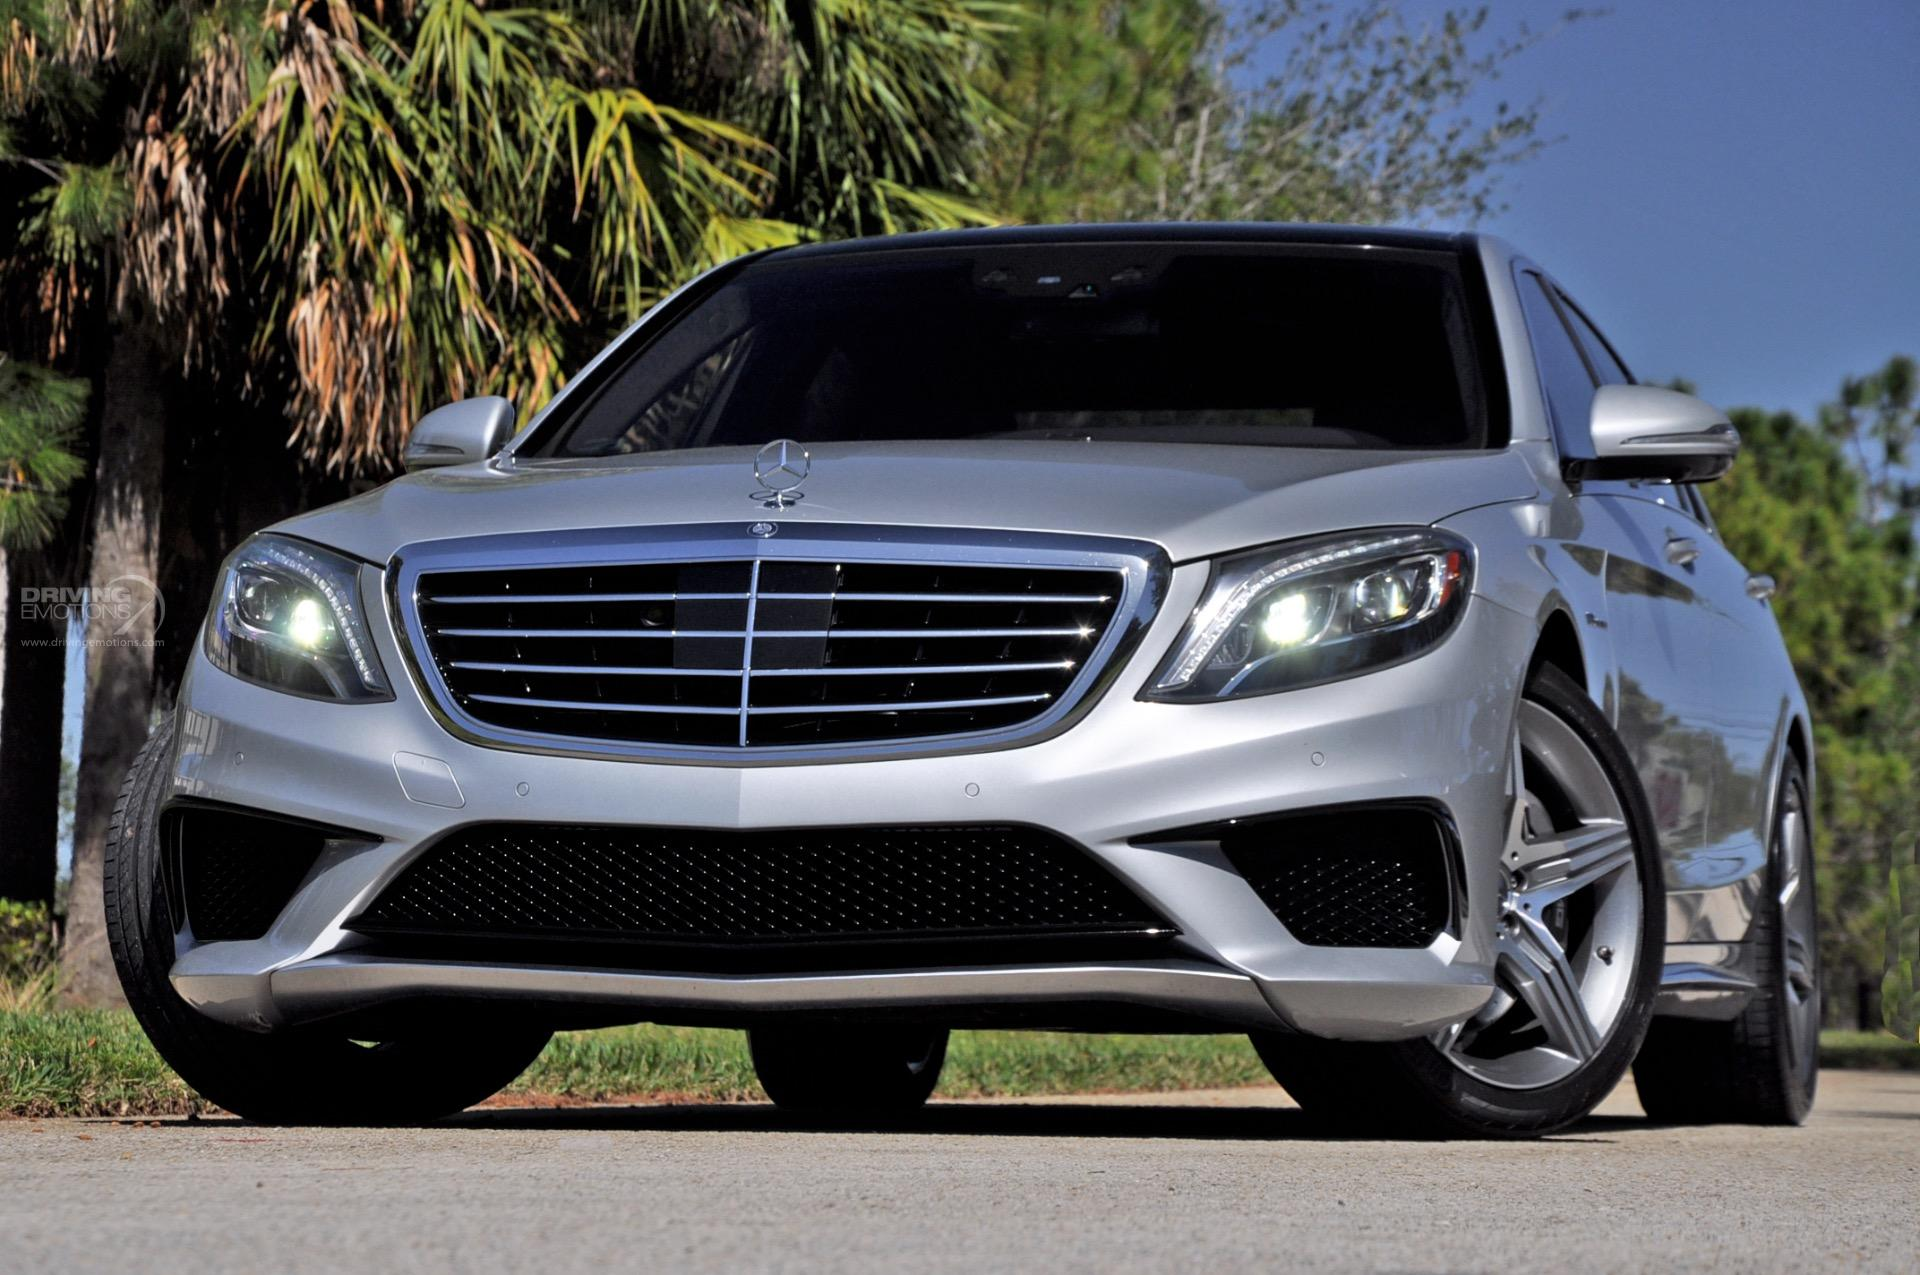 2014 mercedes benz s63 amg s63 amg stock 5858 for sale for Mercedes benz dealers south florida